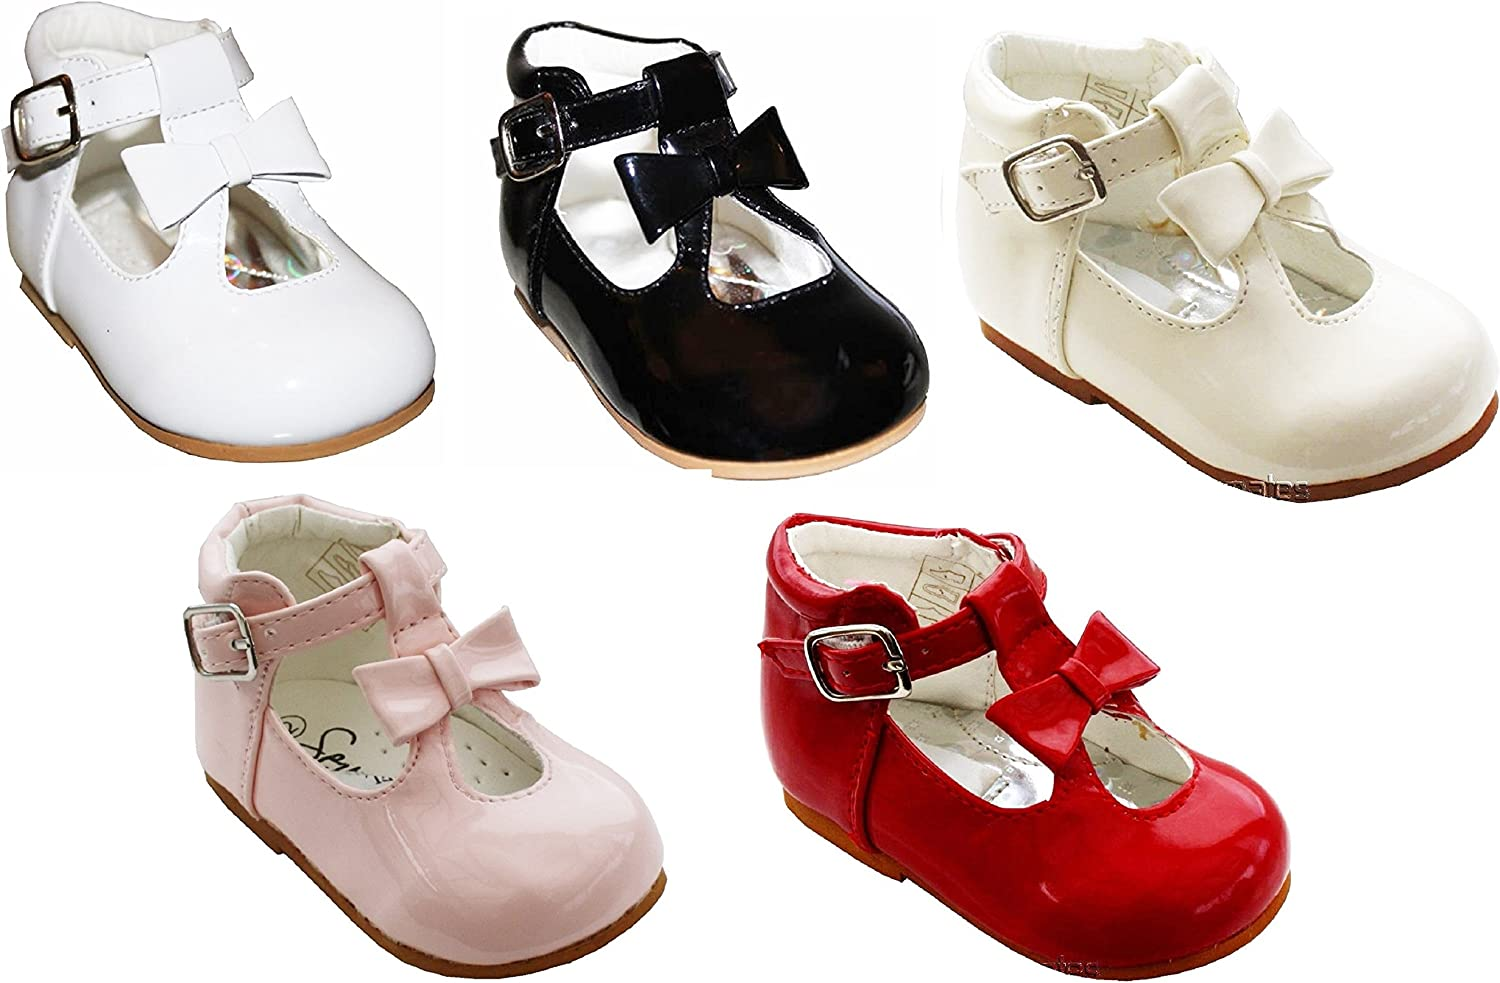 KIDS BABY GIRLS INFANTS T-BAR SPANISH FLAT WEDDING PARTY PATENT TODDLER SHOES4-8